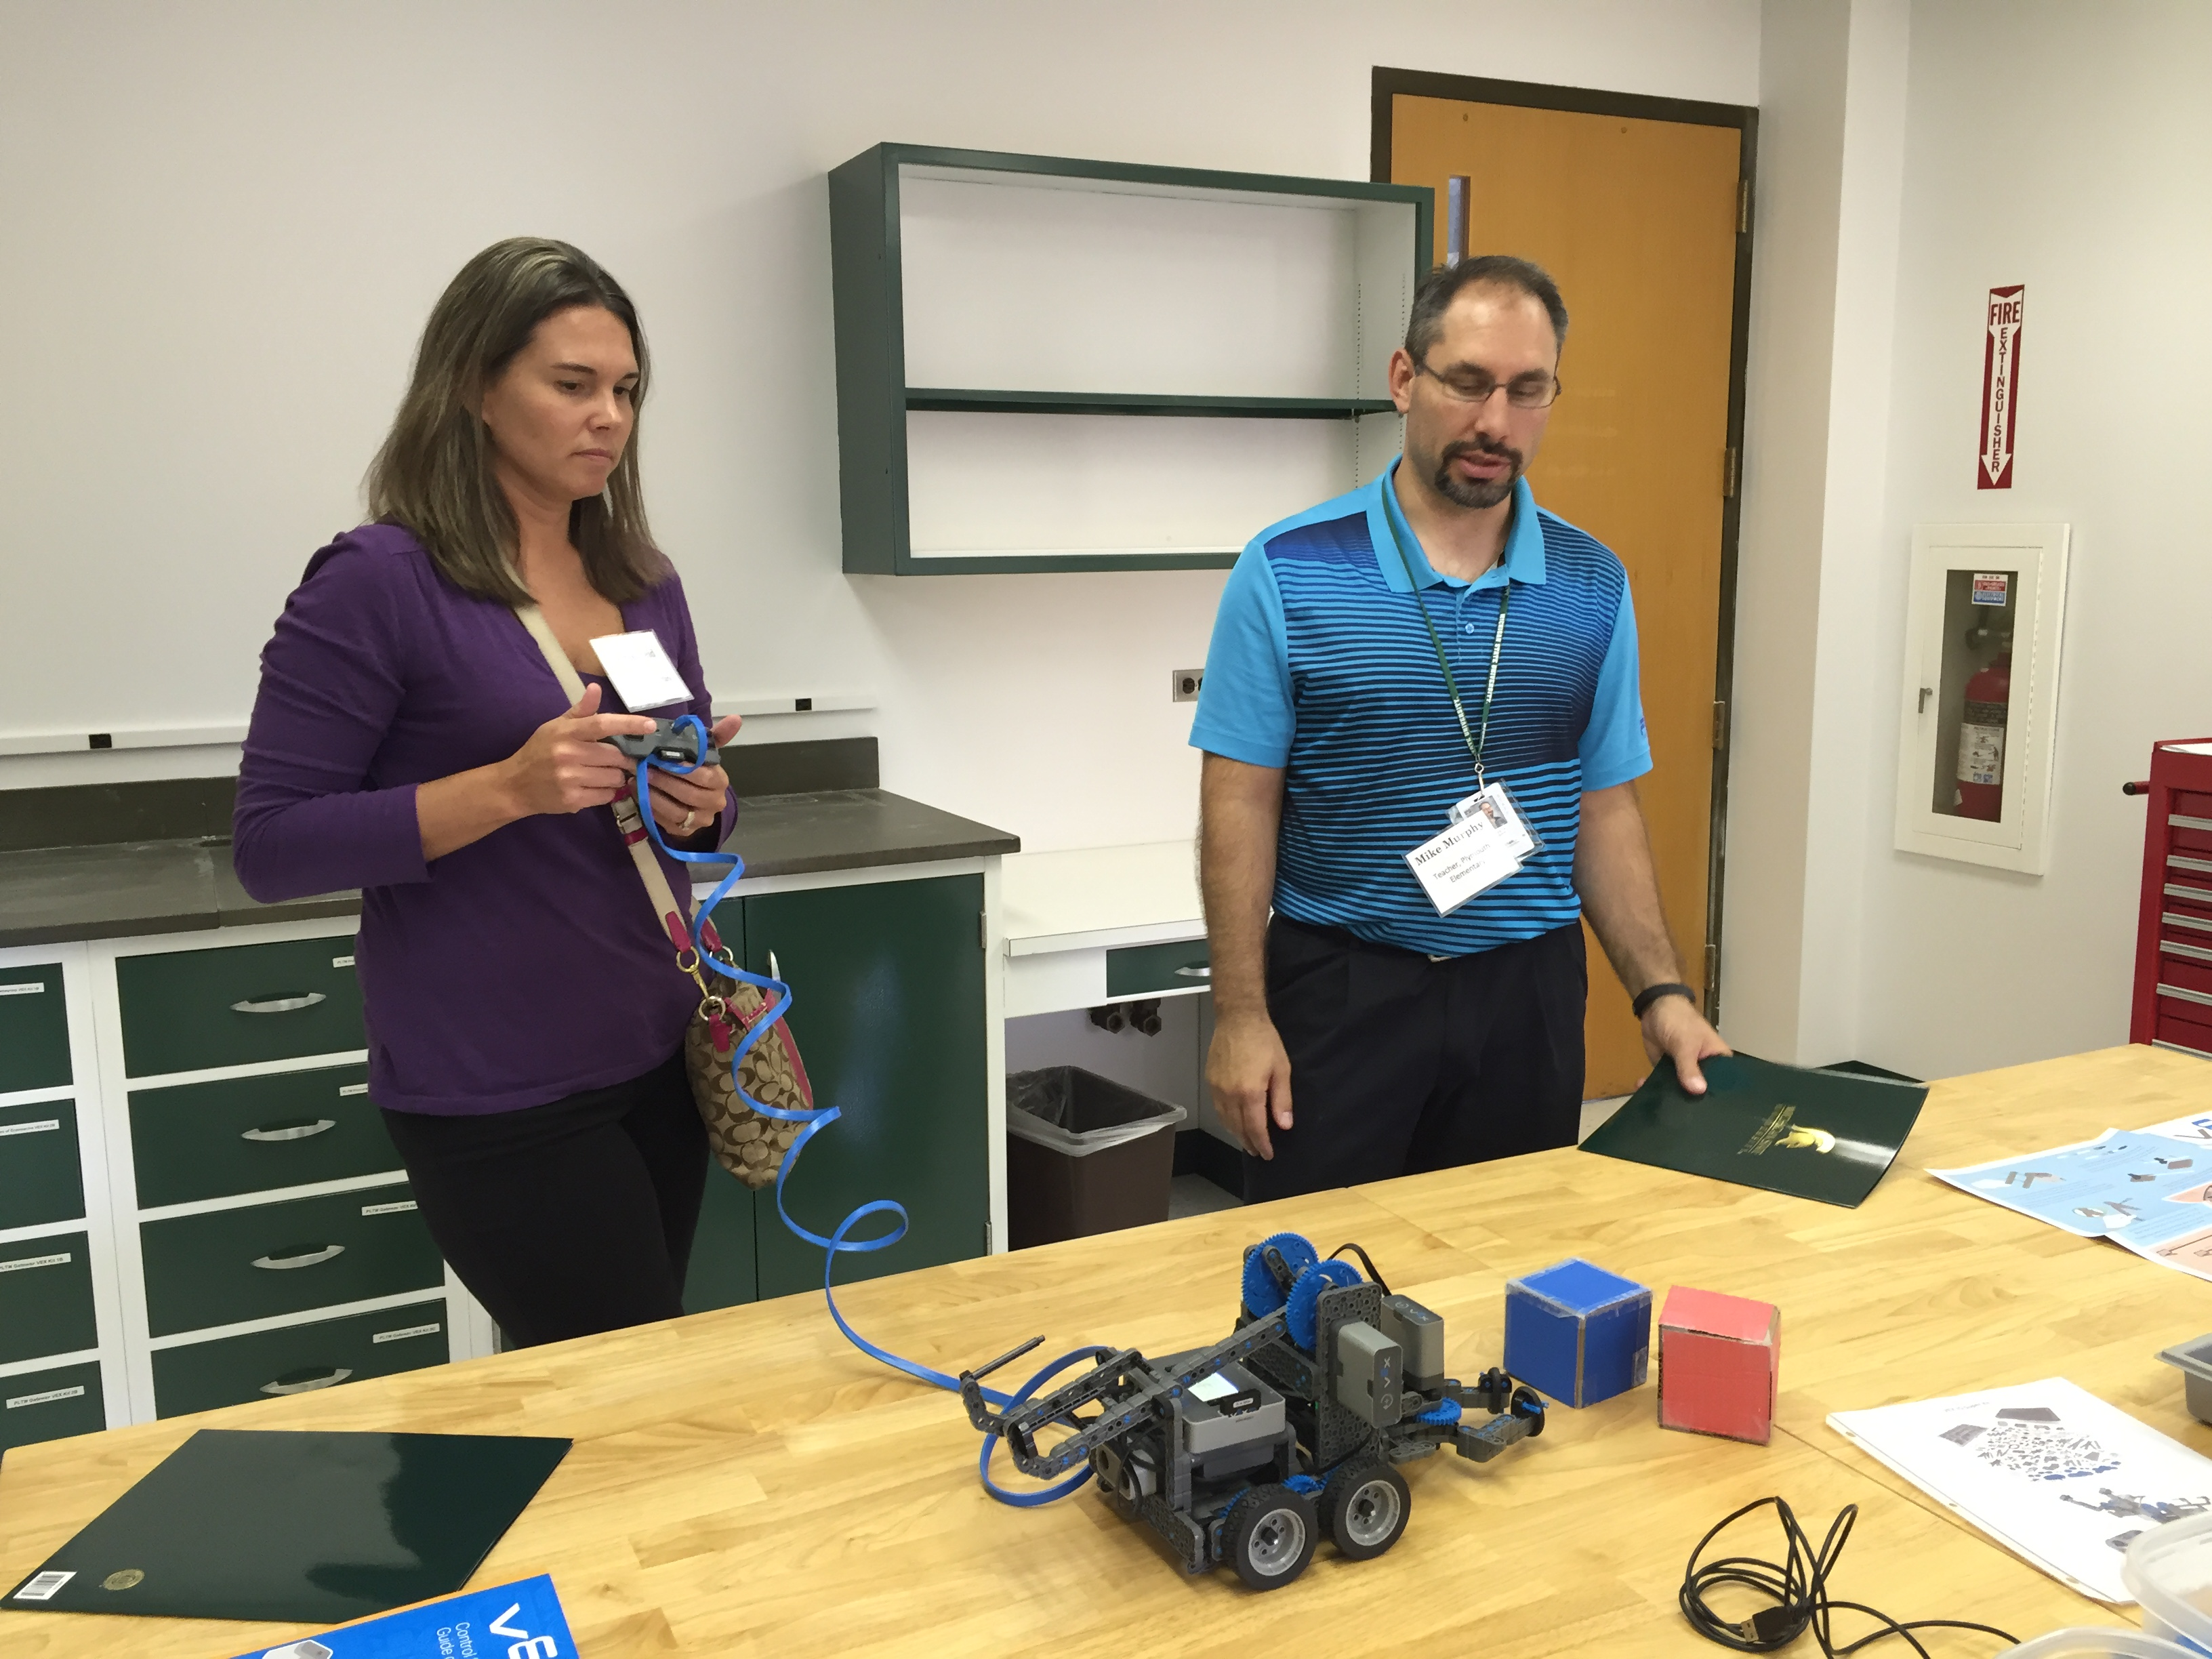 Two teachers working on 3D printing project